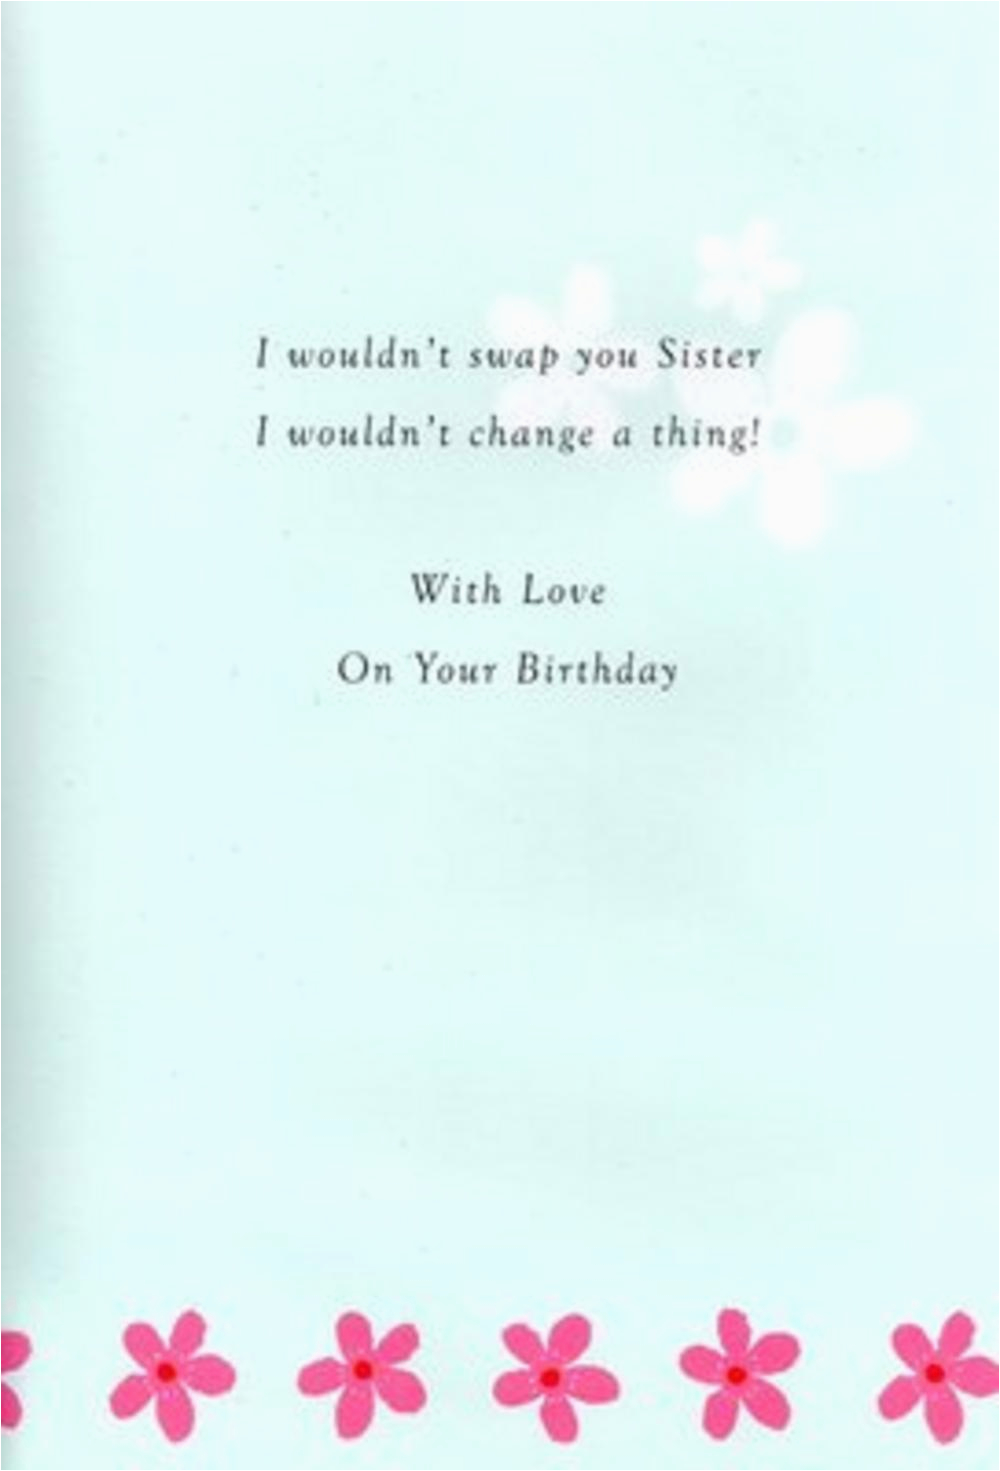 Verses for Birthday Cards for Sister Sister Birthday Poetry In Motion Card Cards Love Kates